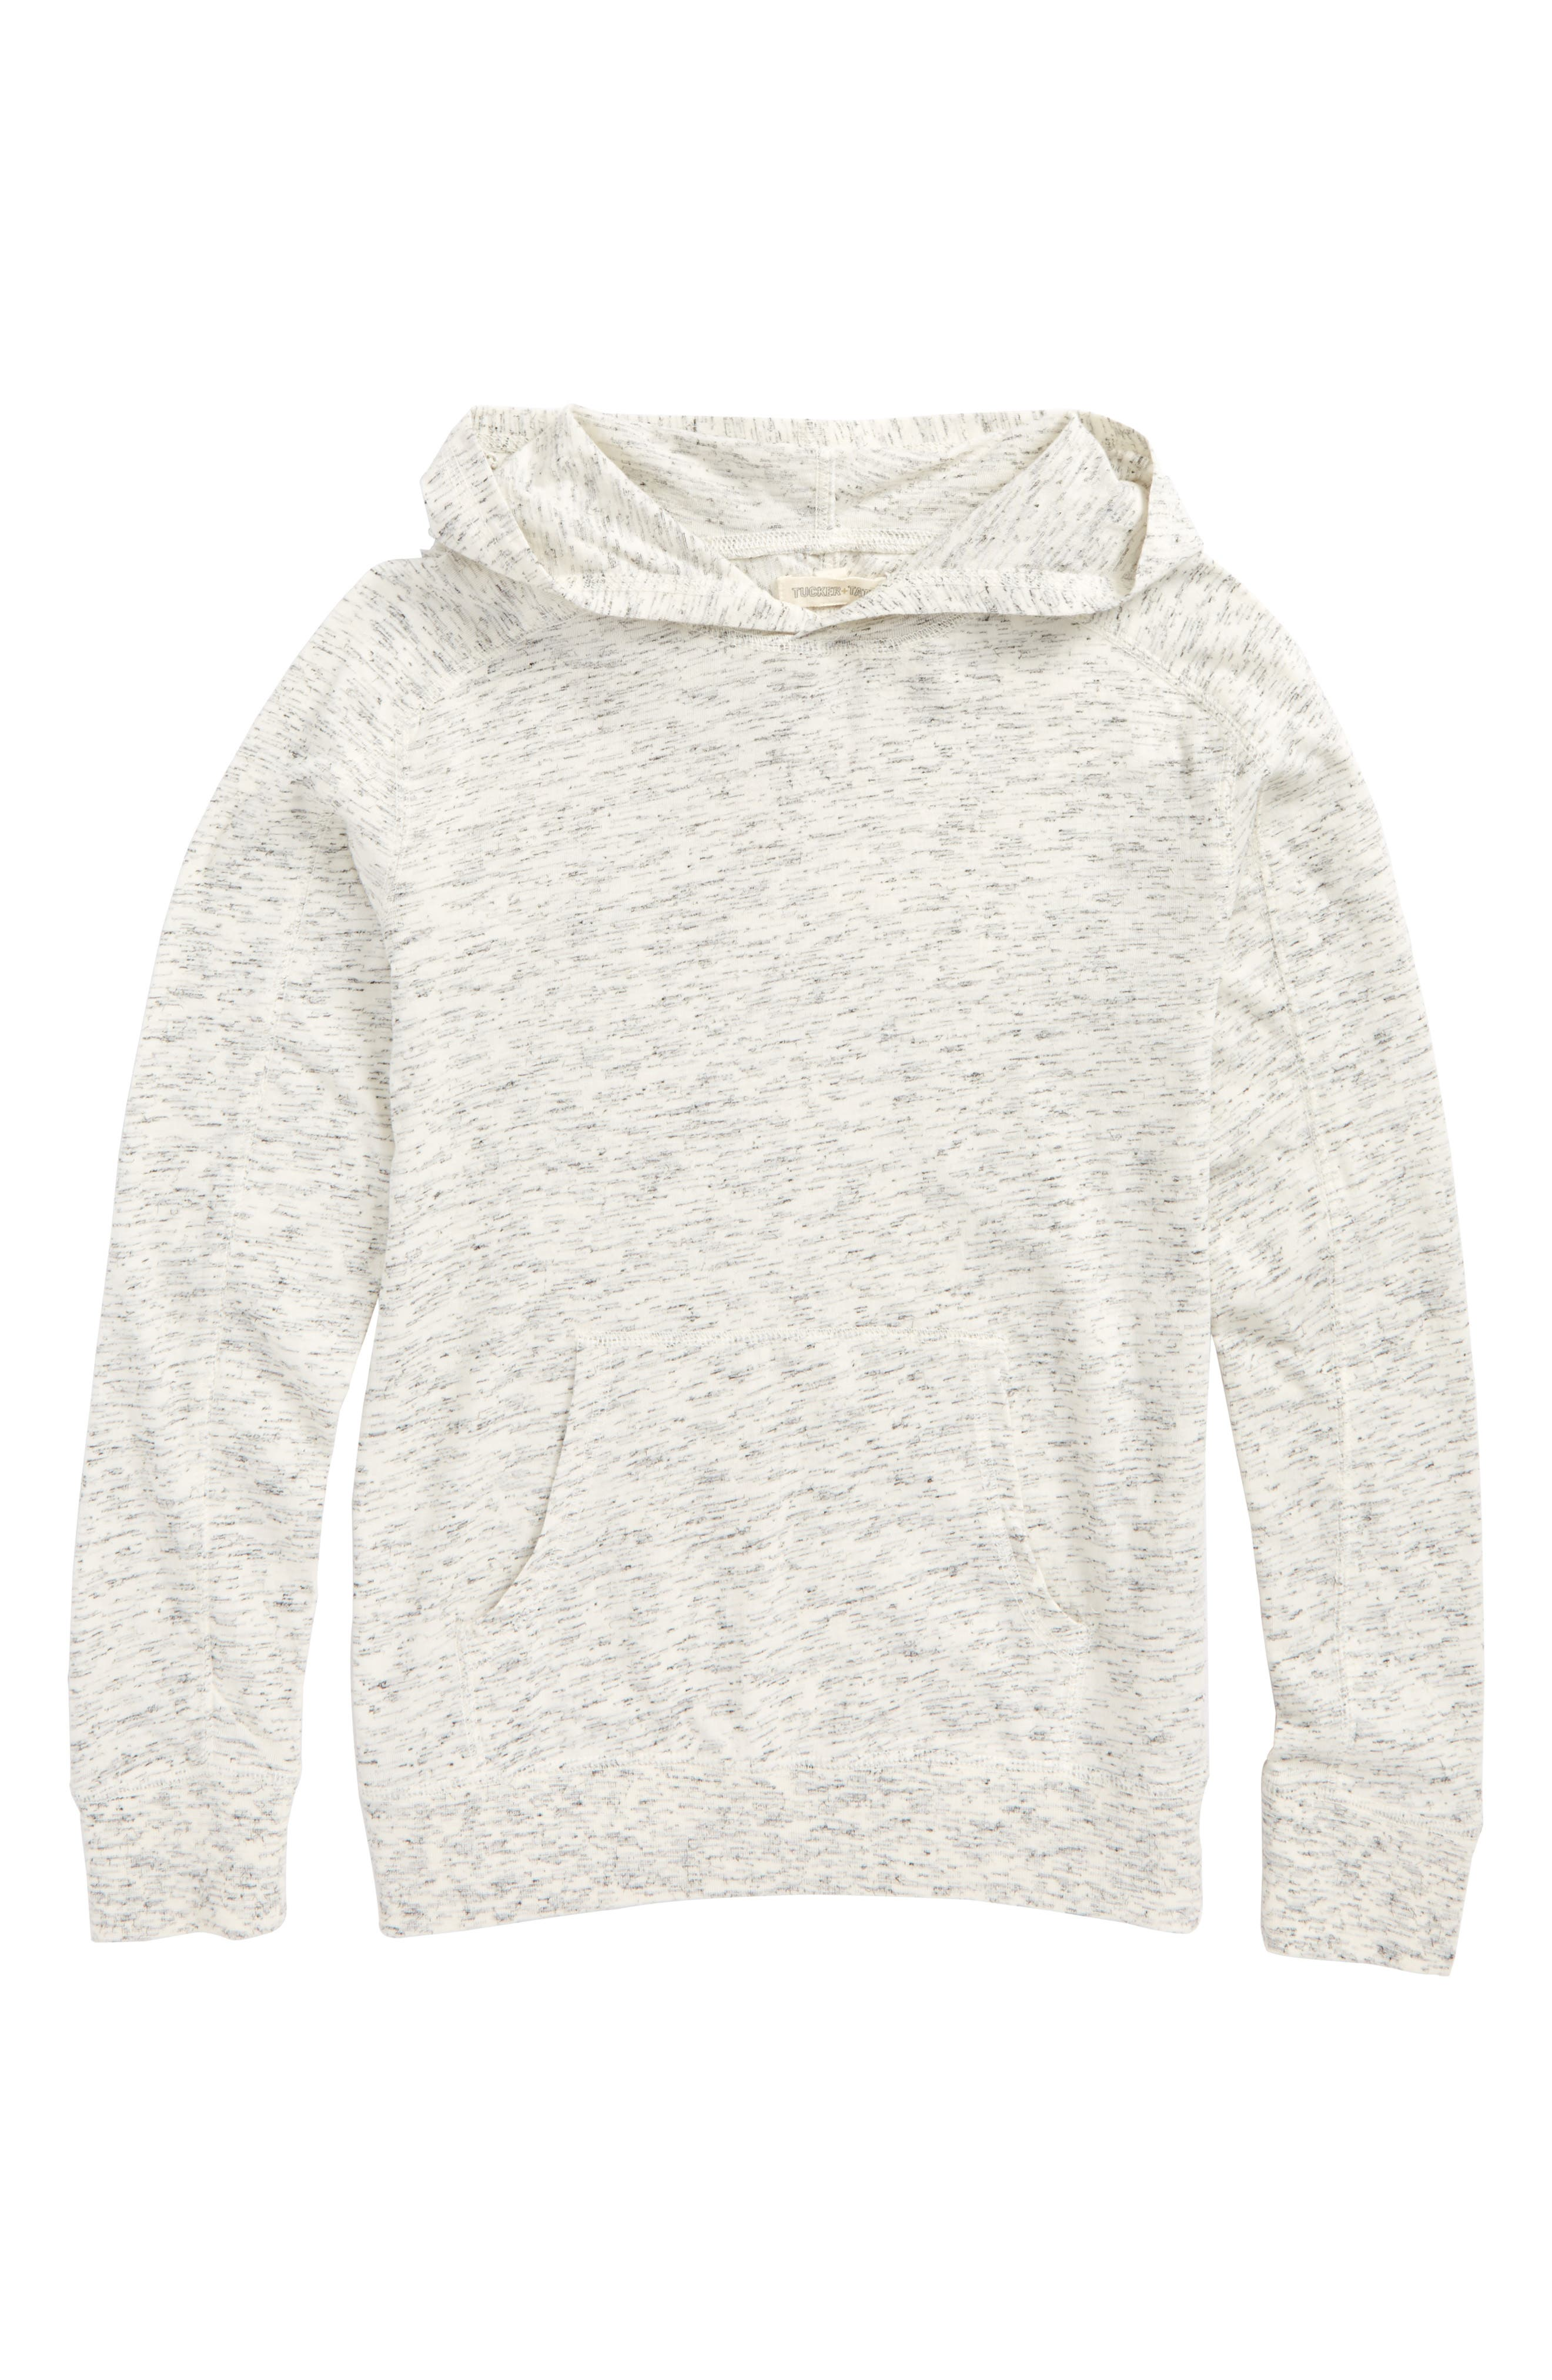 Filament Hoodie,                             Main thumbnail 1, color,                             235